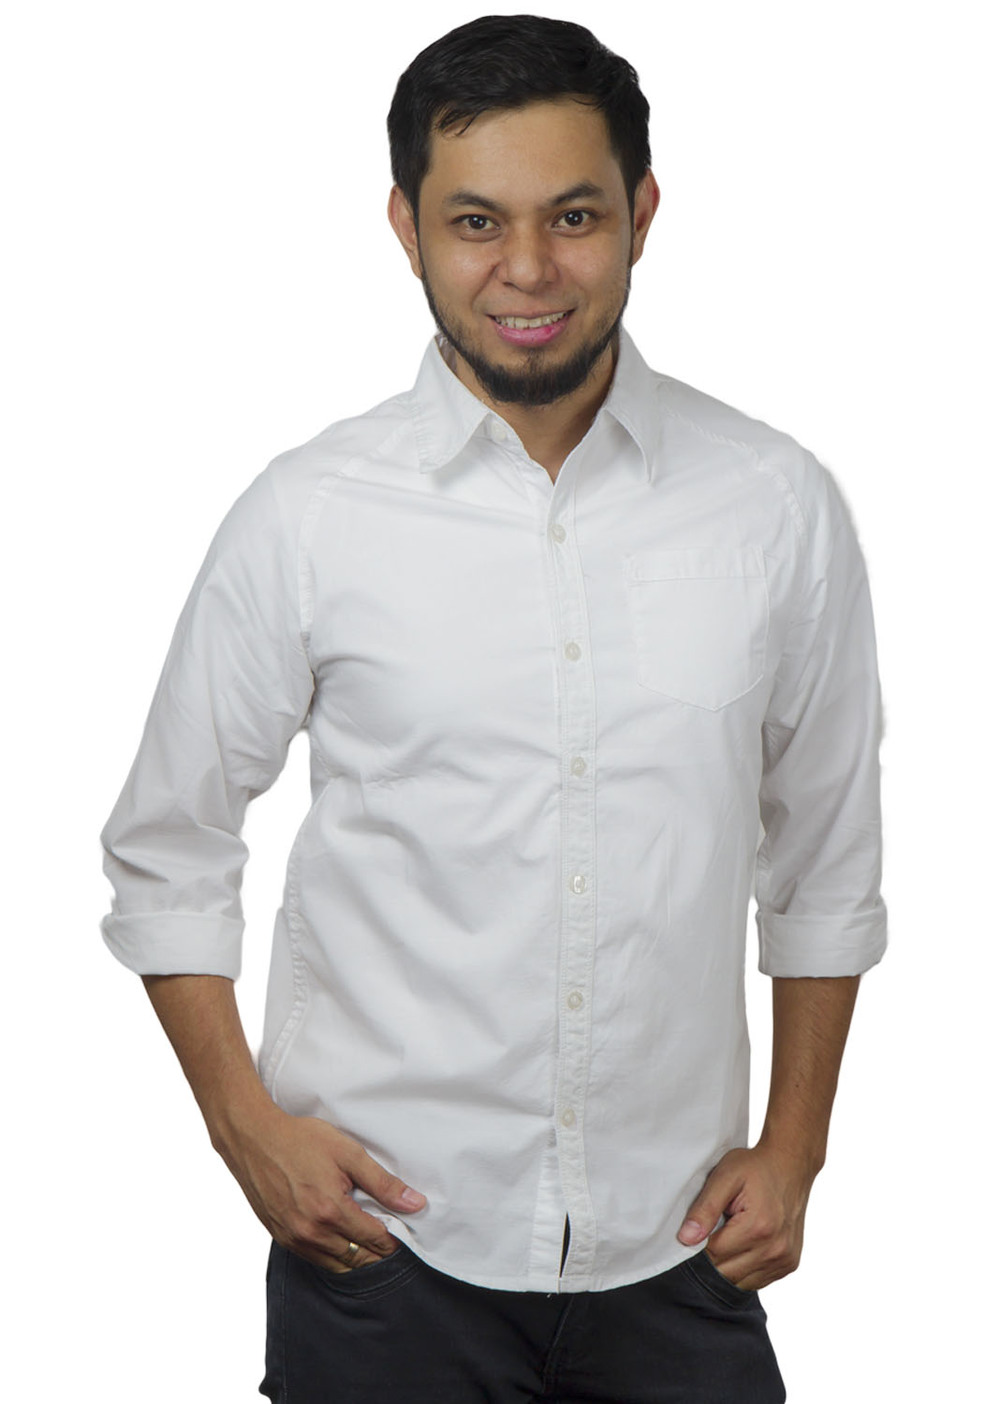 NORMAN PADILLA Client Service Director Determined and optimistic, Norman is an enjoyable person to be around. He is an avid fan of local music and cherishes time with his family.